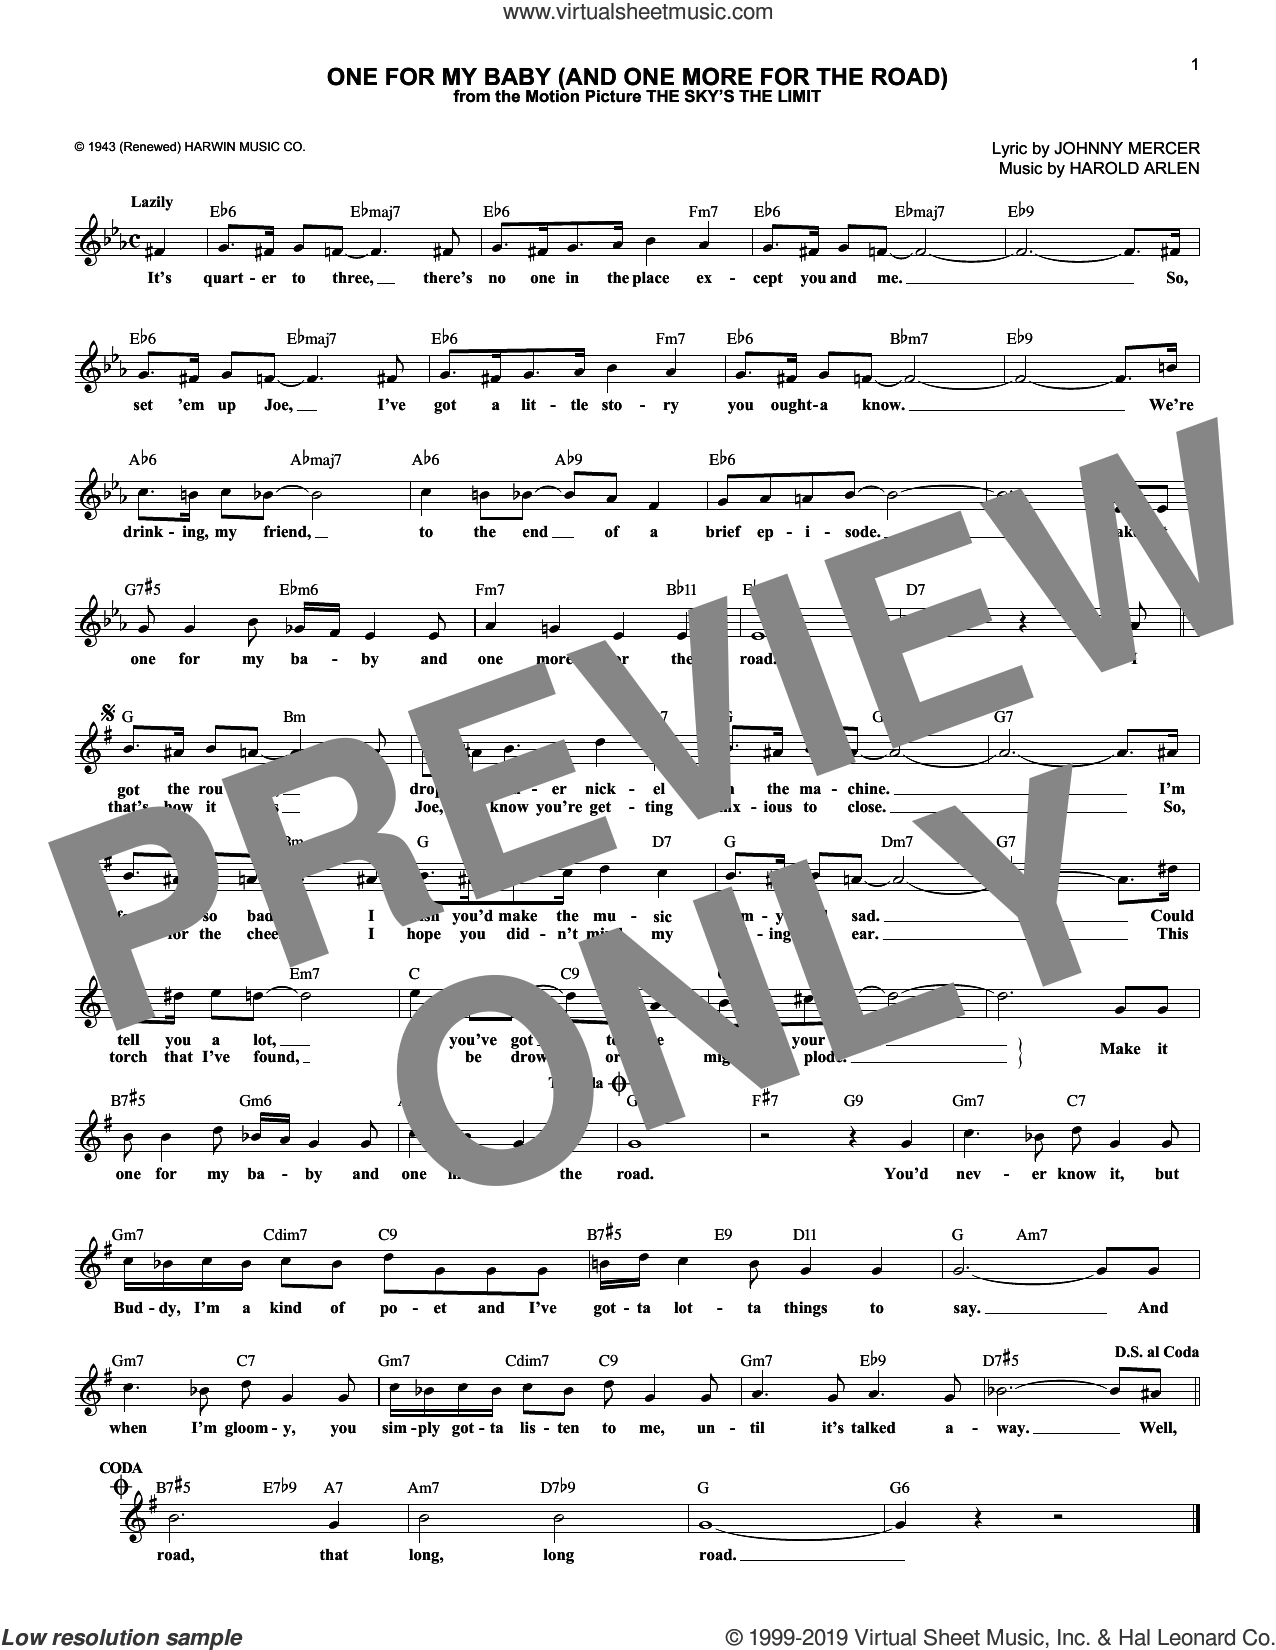 One For My Baby (And One More For The Road) sheet music for voice and other instruments (fake book) by Frank Sinatra, Harold Arlen and Johnny Mercer, intermediate skill level